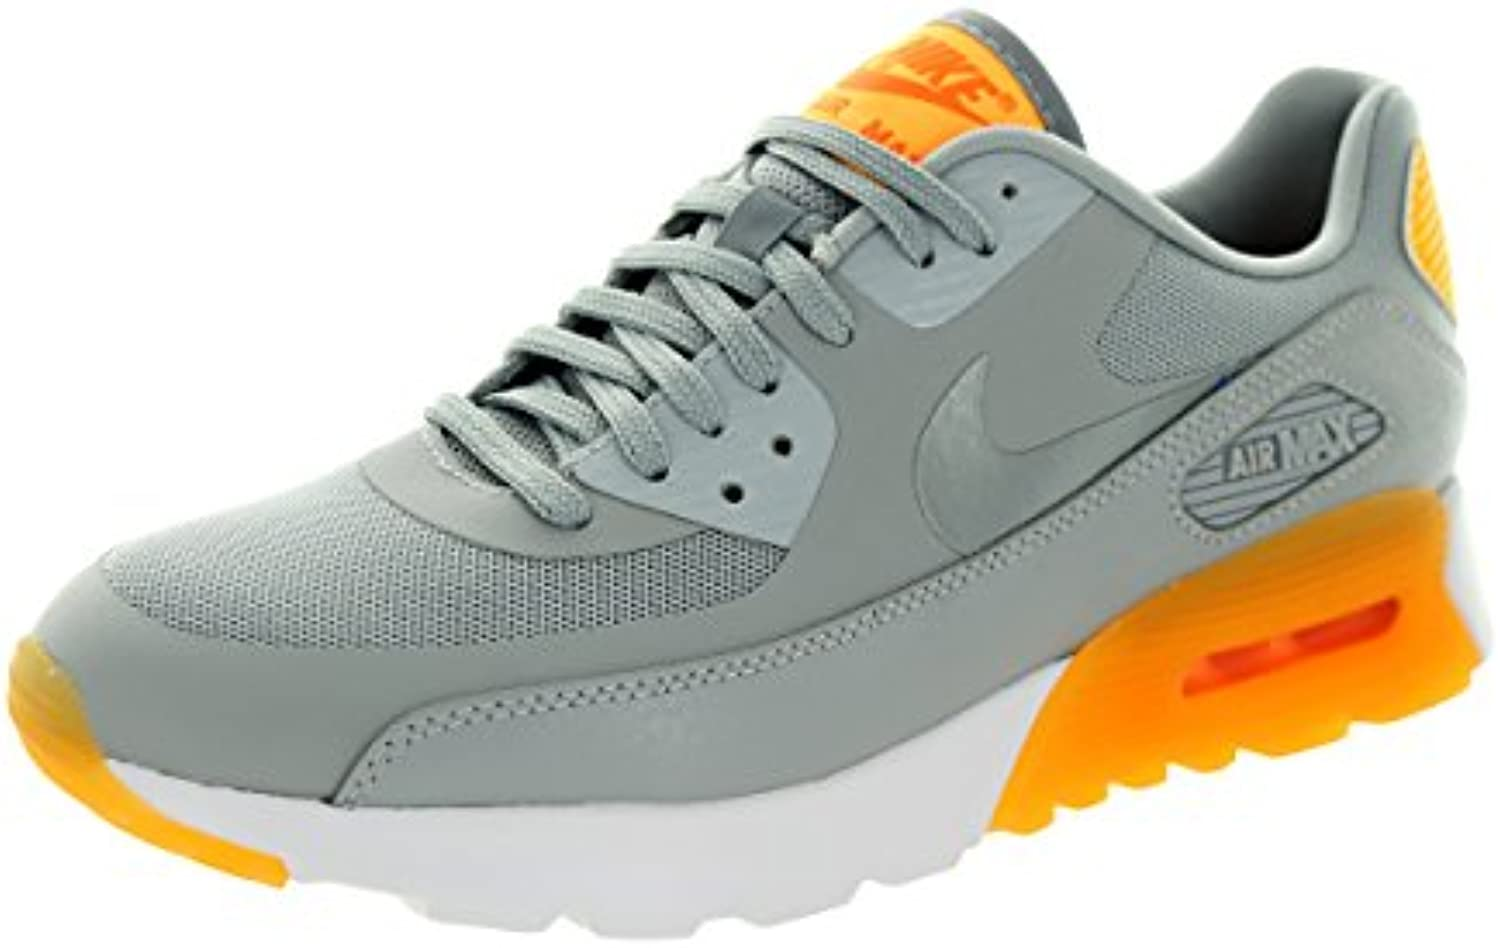 Nike mujer's Air Max 90 Ultra Essential Wlf Gry/Cl Gry/Lsr Orng/Ttl Or Running zapatos 7.5 mujer US